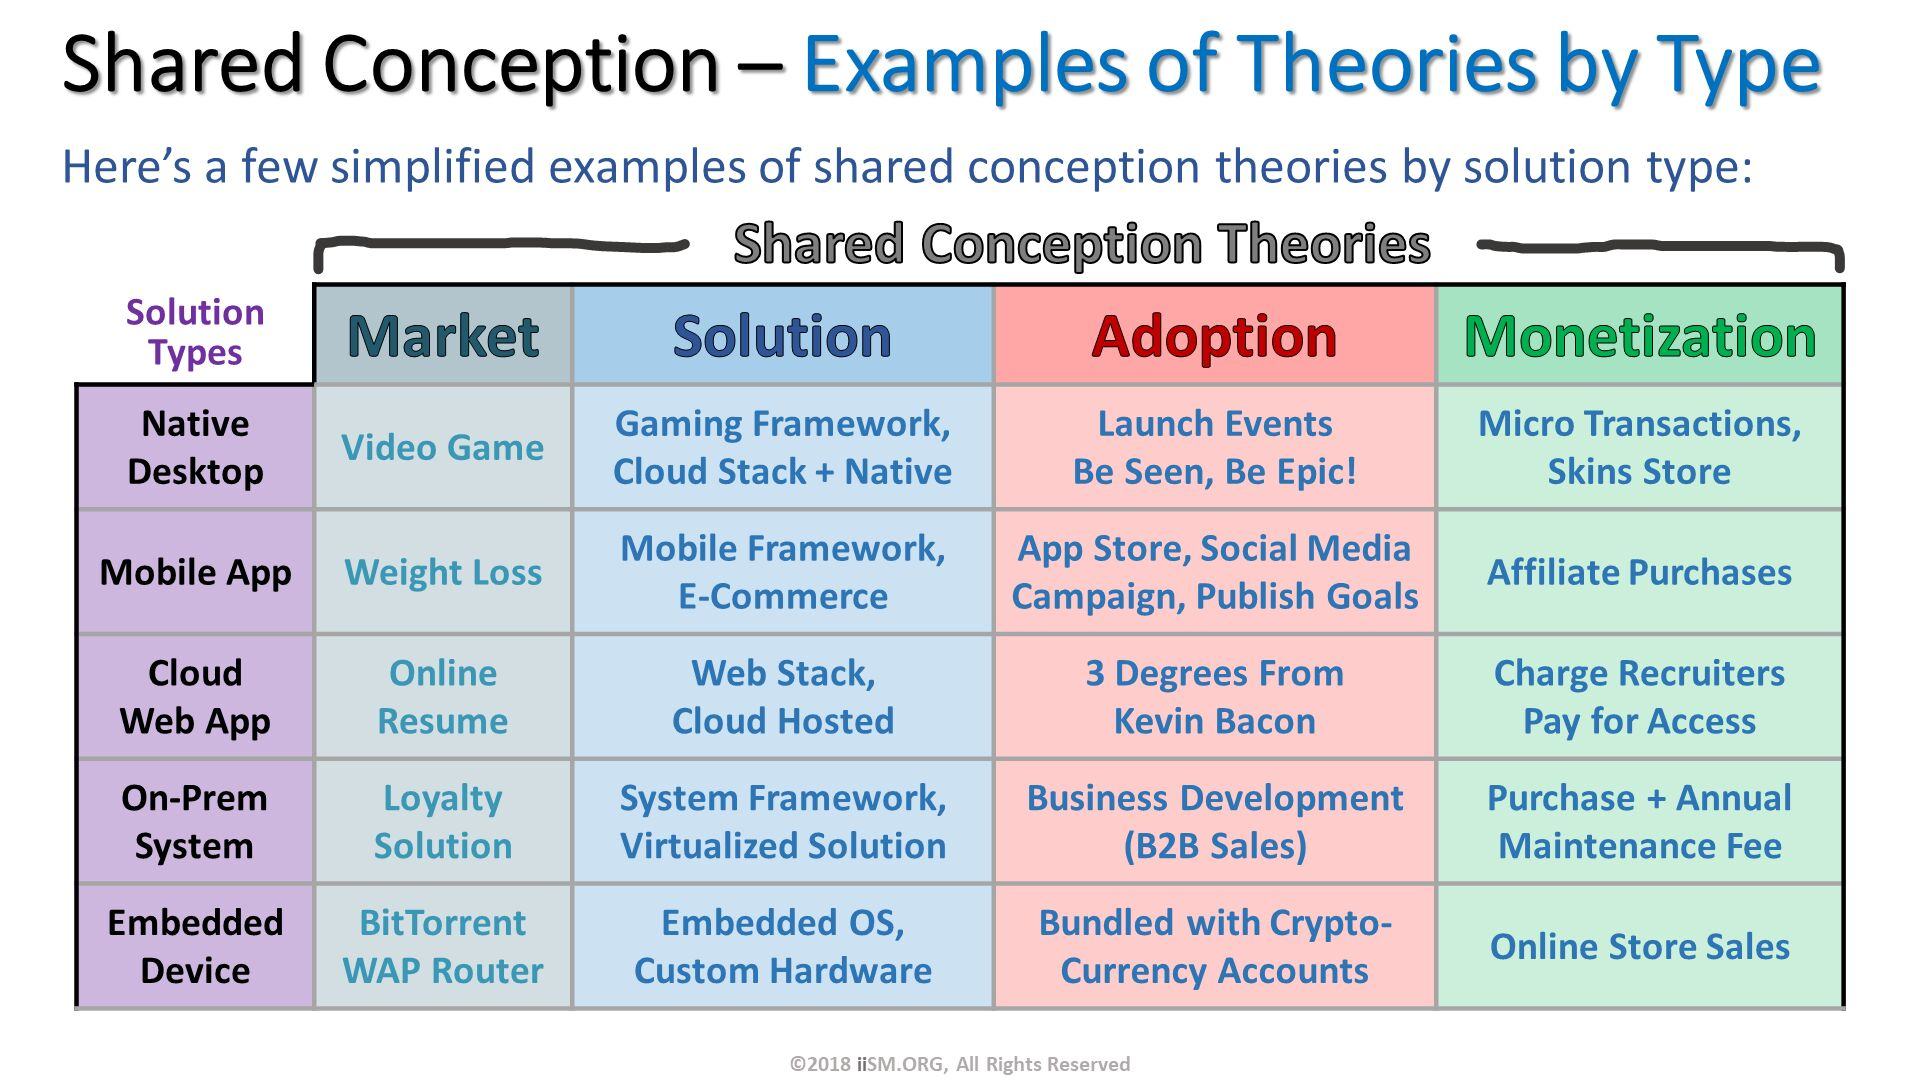 ©2018 iiSM.ORG, All Rights Reserved. Shared Conception – Examples of Theories by Type. Shared Conception Theories. Here's a few simplified examples of shared conception theories by solution type:  .